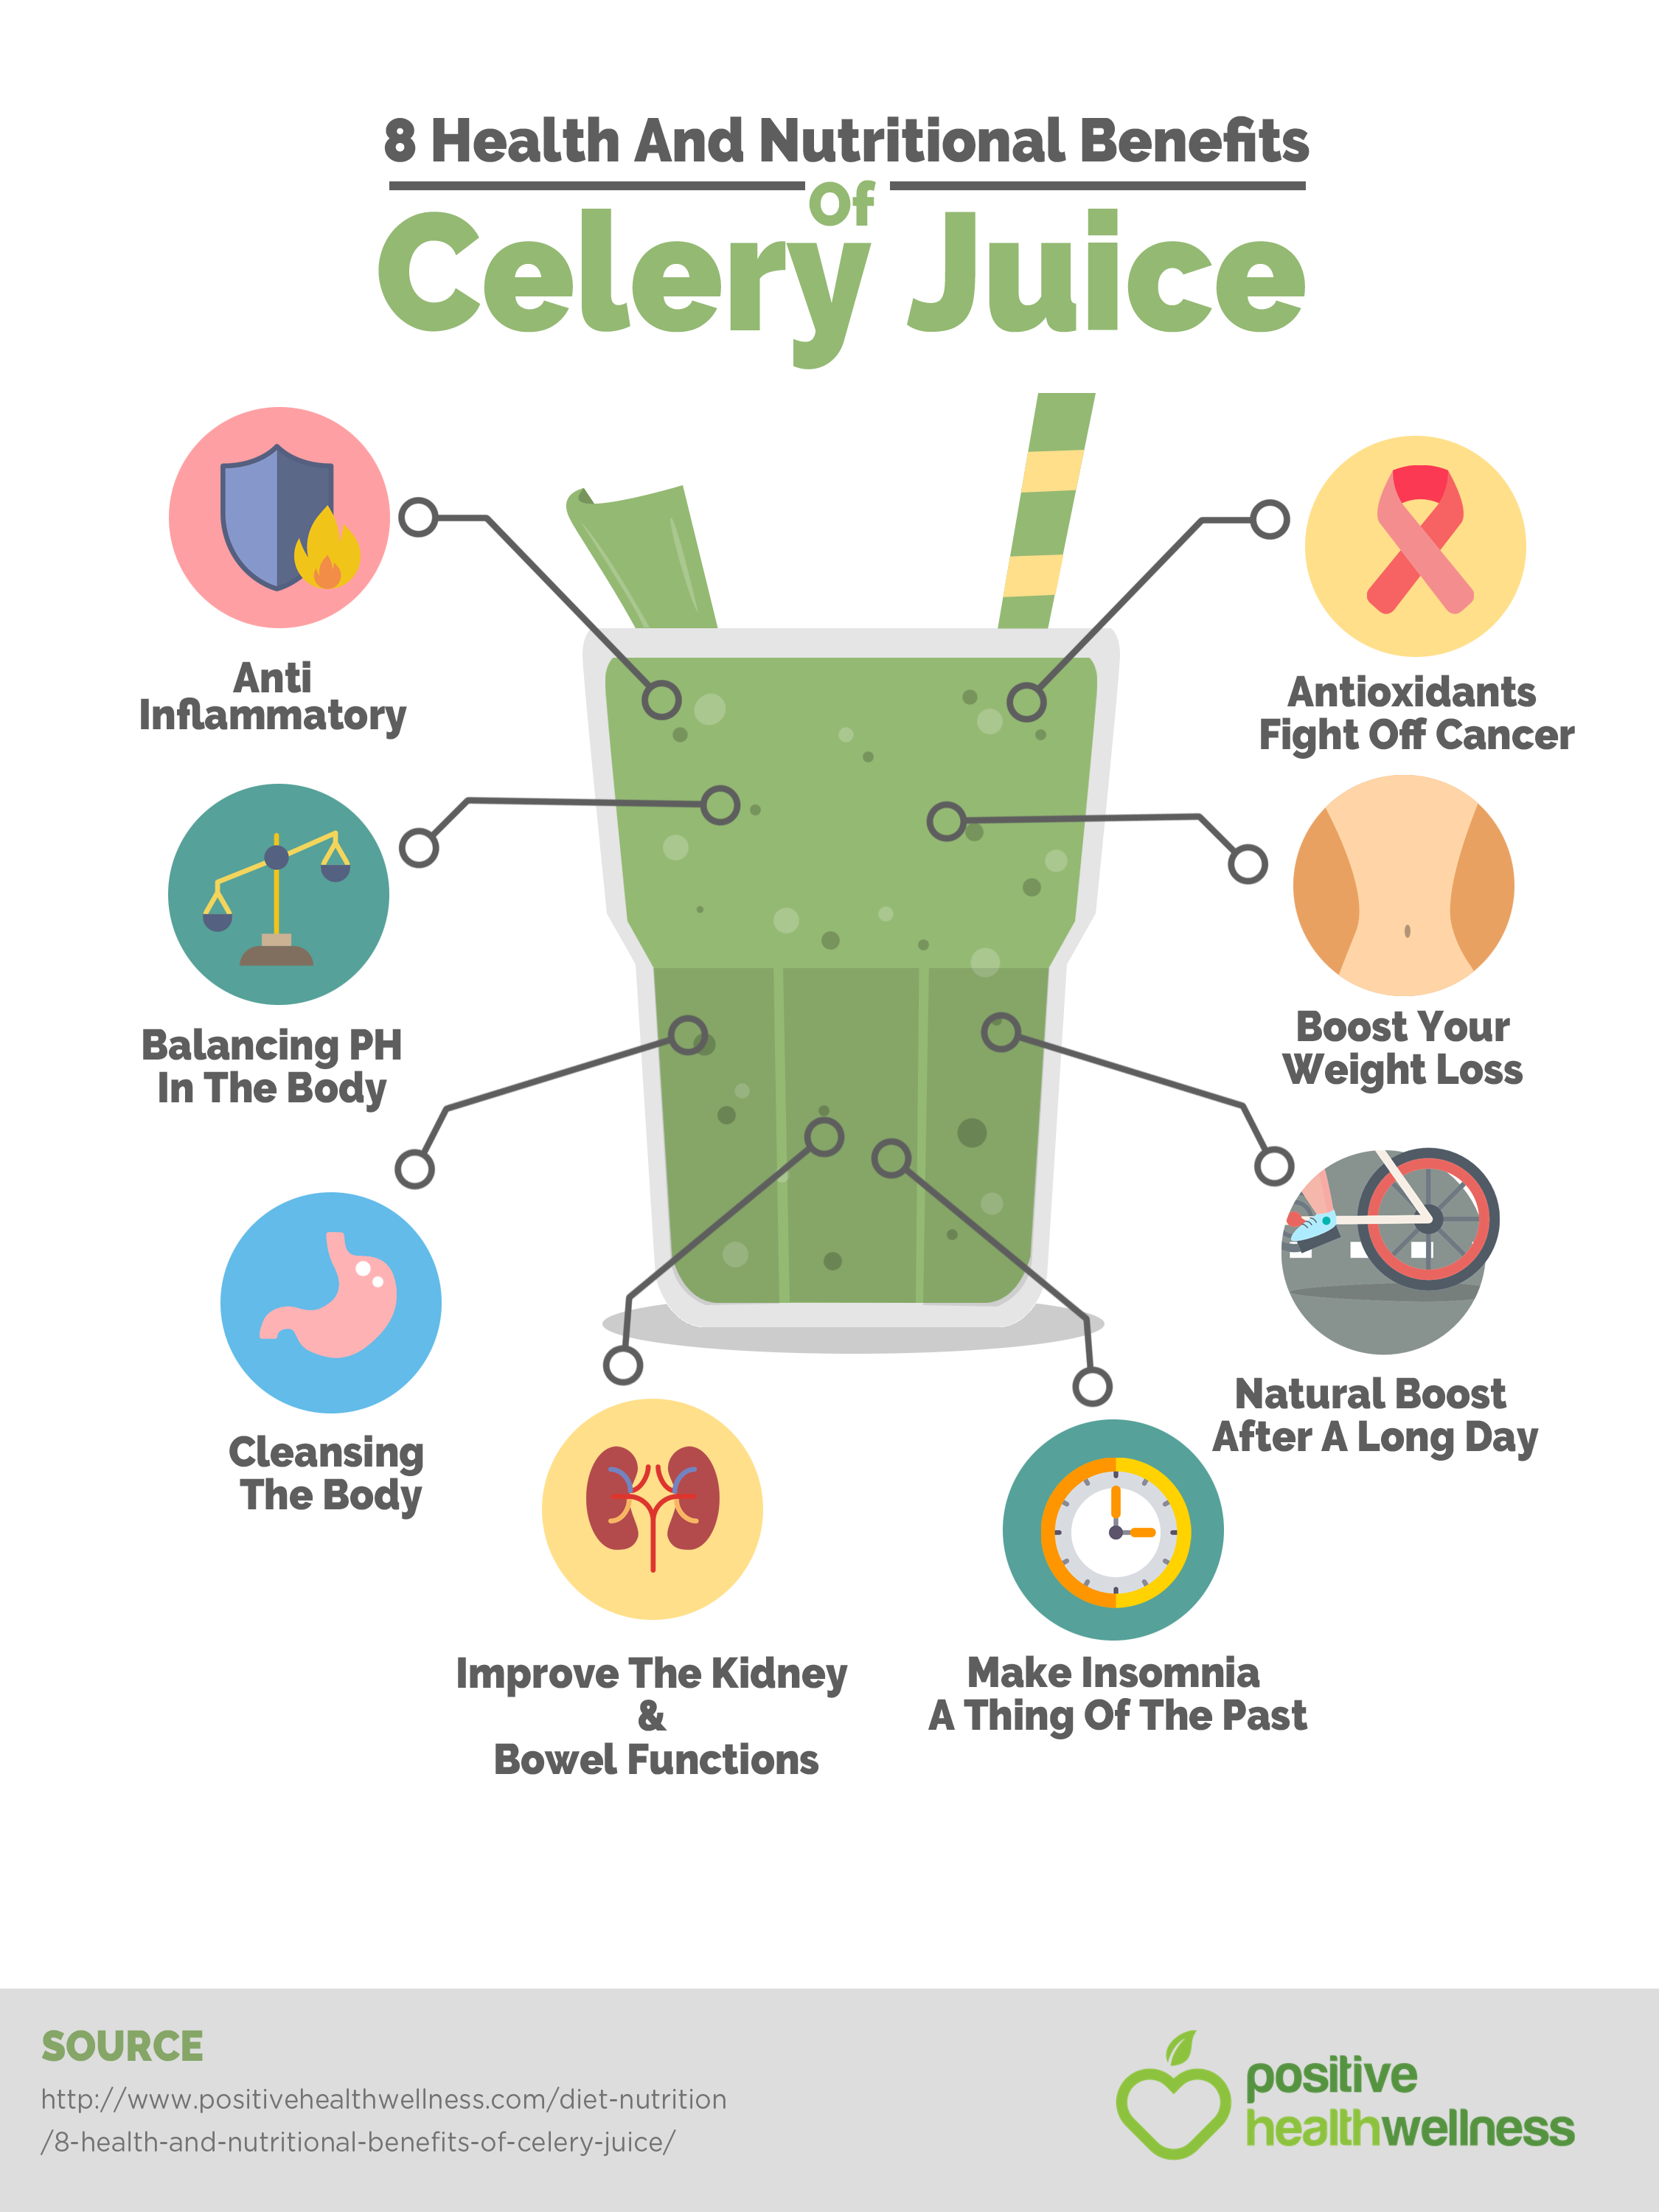 juicing vegetables offer many health and nutritional